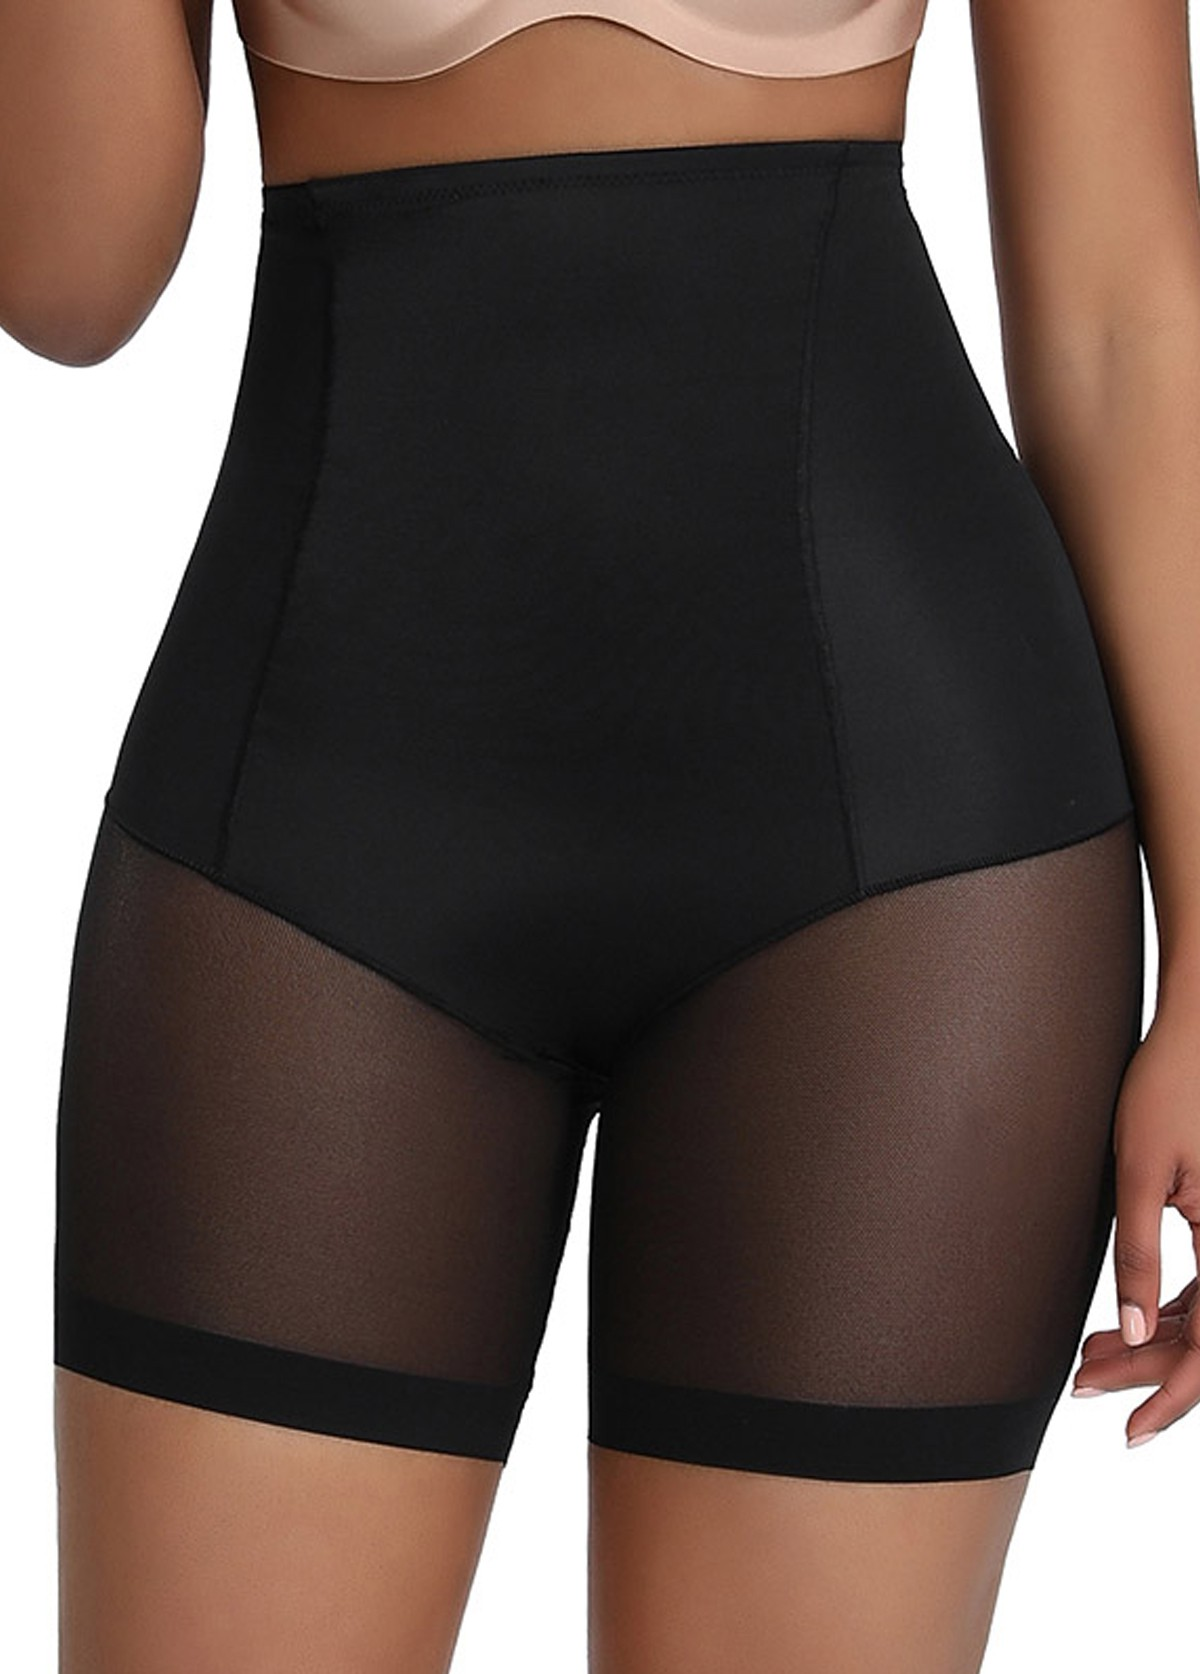 Solid Black High Waisted Panties